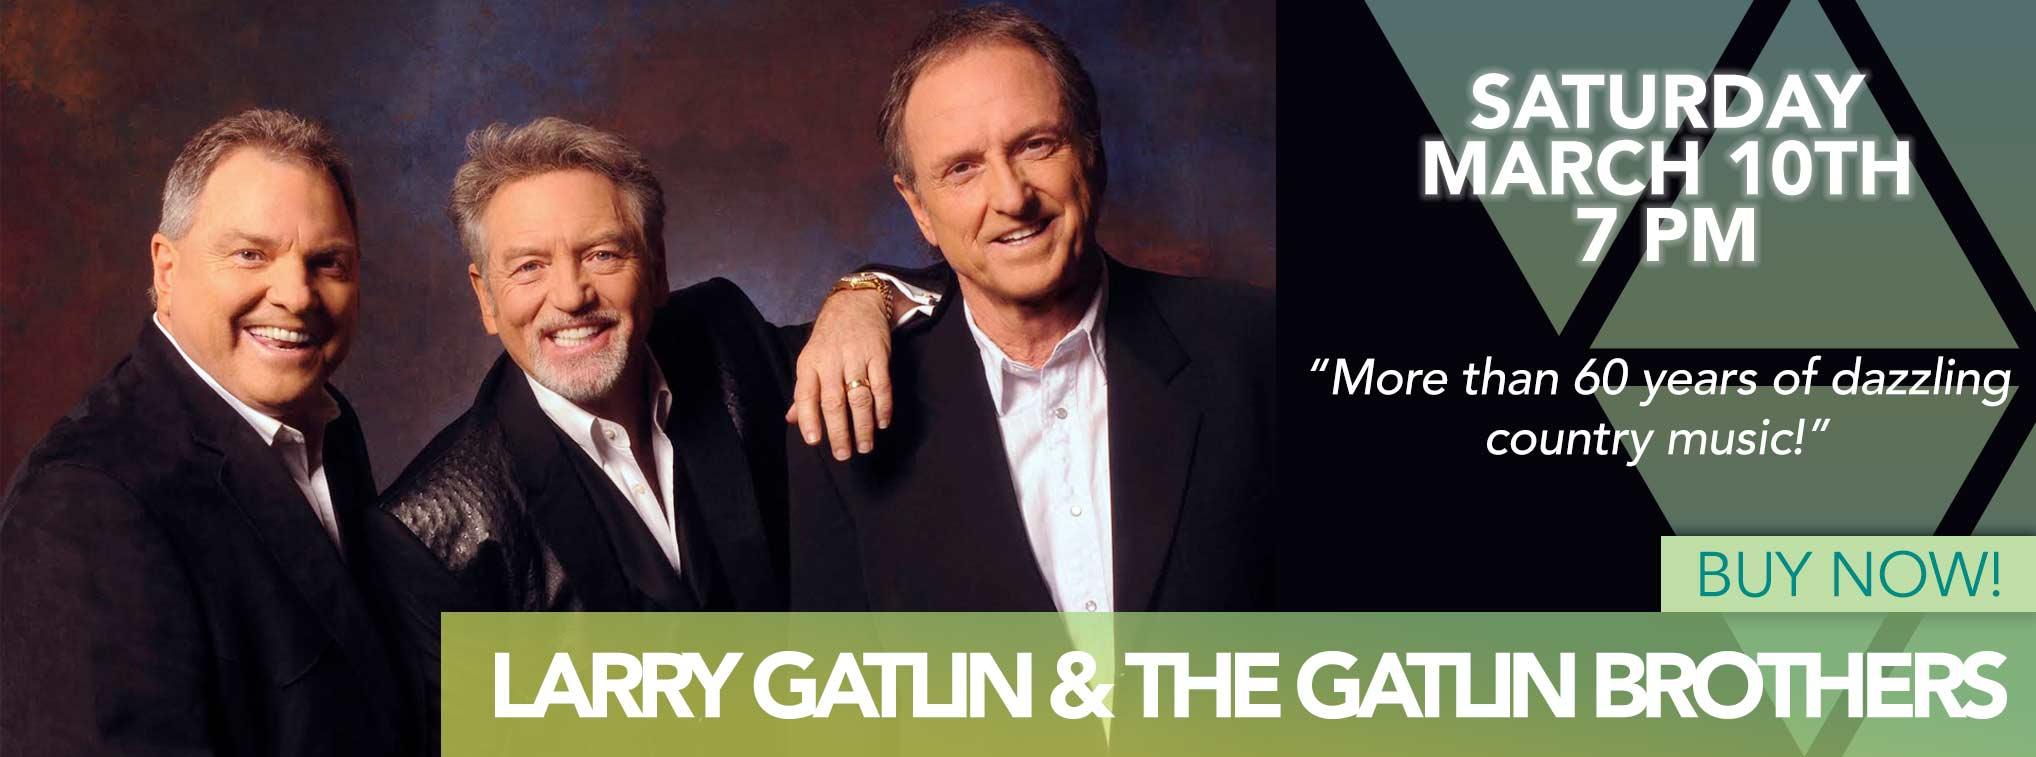 Larry Gatlin & The Gatlin Brothers - Saturday March 10th 7PM